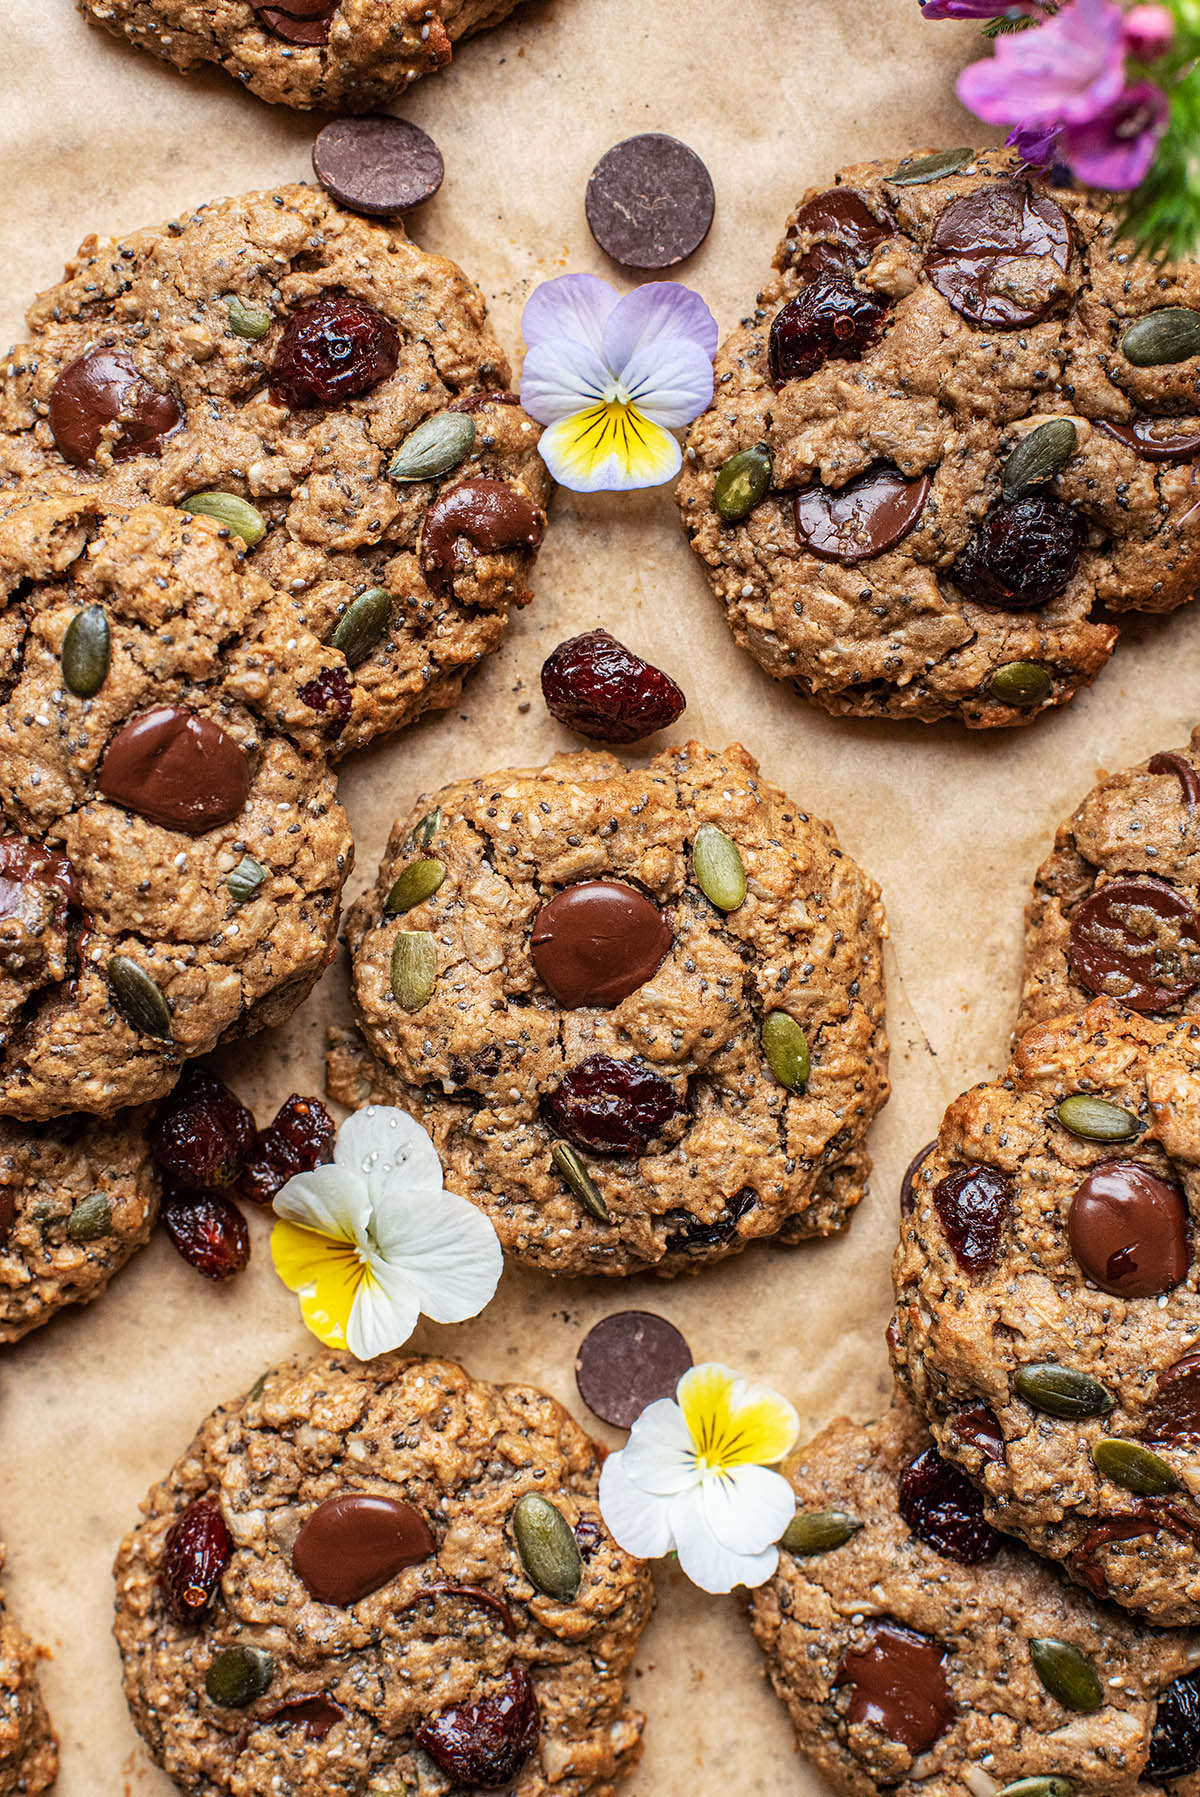 Trail mix cookies with chocolate, cranberries, and pansies, on parchment paper.